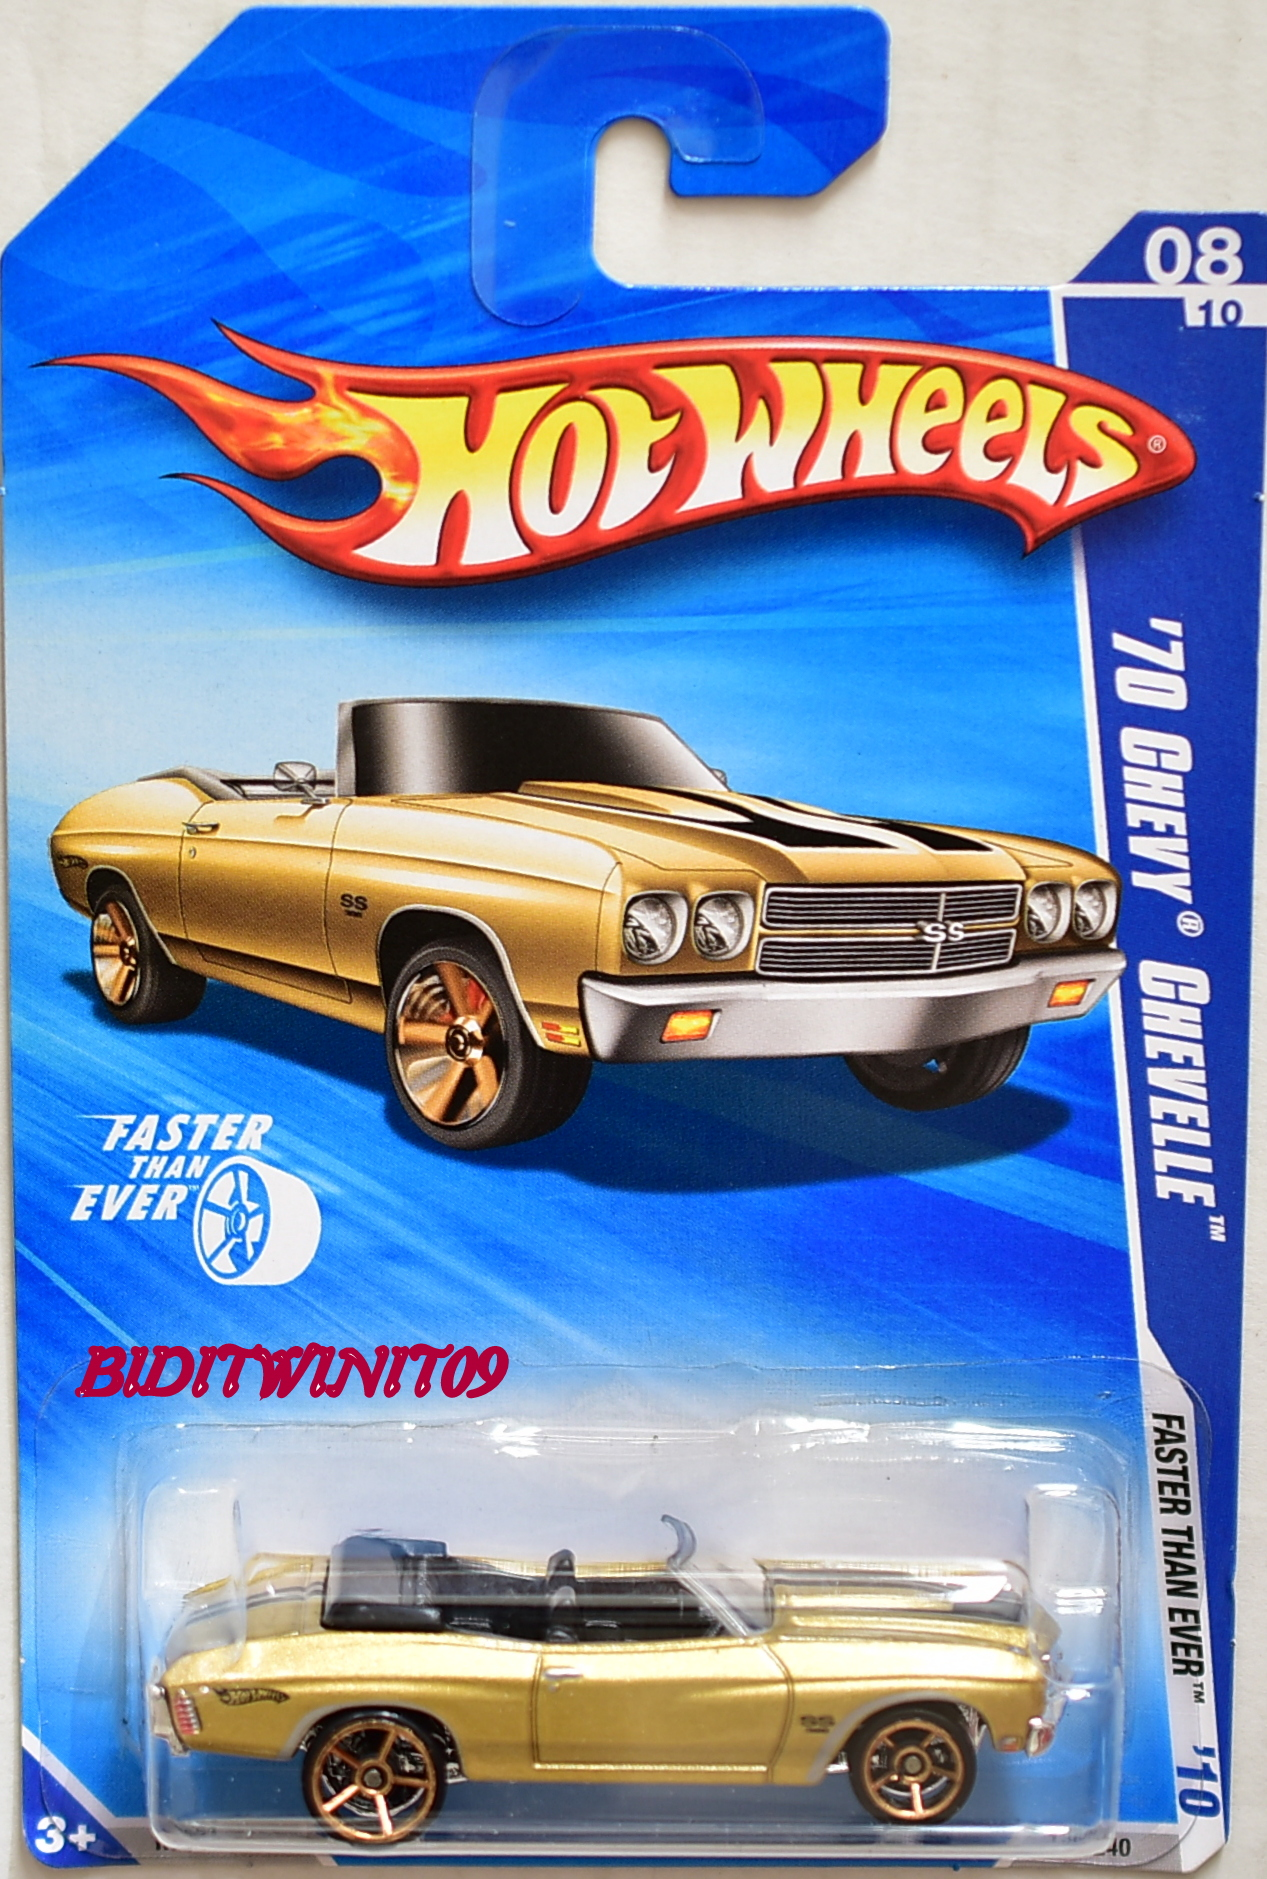 HOT WHEELS 2010 '70 CHEVY CHEVELLE FASTER THAN EVER 8/10